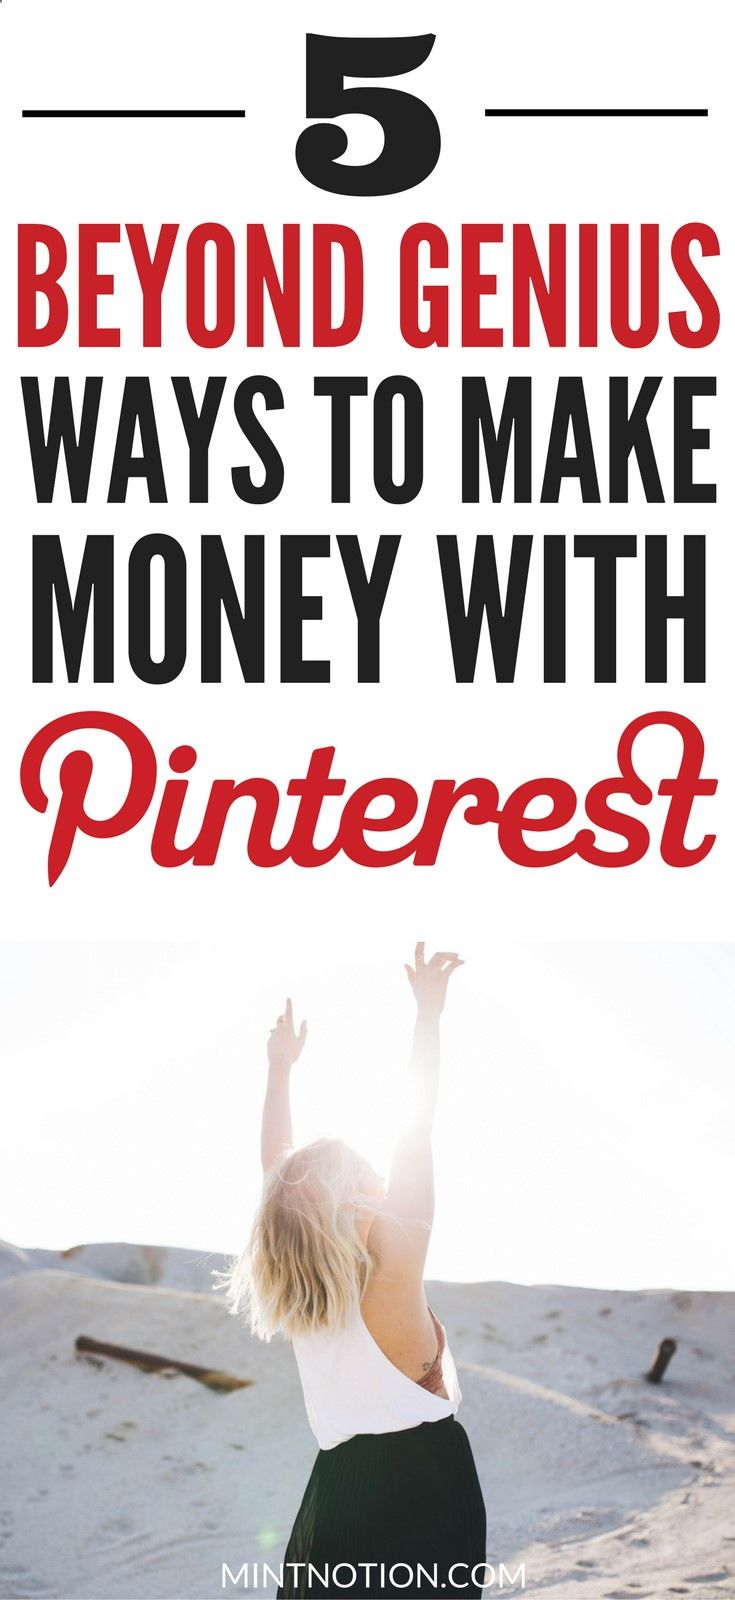 Earn Money Virtual Training How to work from home on Pinterest | Make Money on Pinterest | Make Money from Home | Side Hustle Ideas | Earn Extra Income Legendary Entrepreneurs Show You How to Start, Launch & Grow a Digital Business...16 Hours of Training from Industry Titans | Have Your Business Up & Running Fast If you didn't show up LIVE, you can still access the Summit replays..